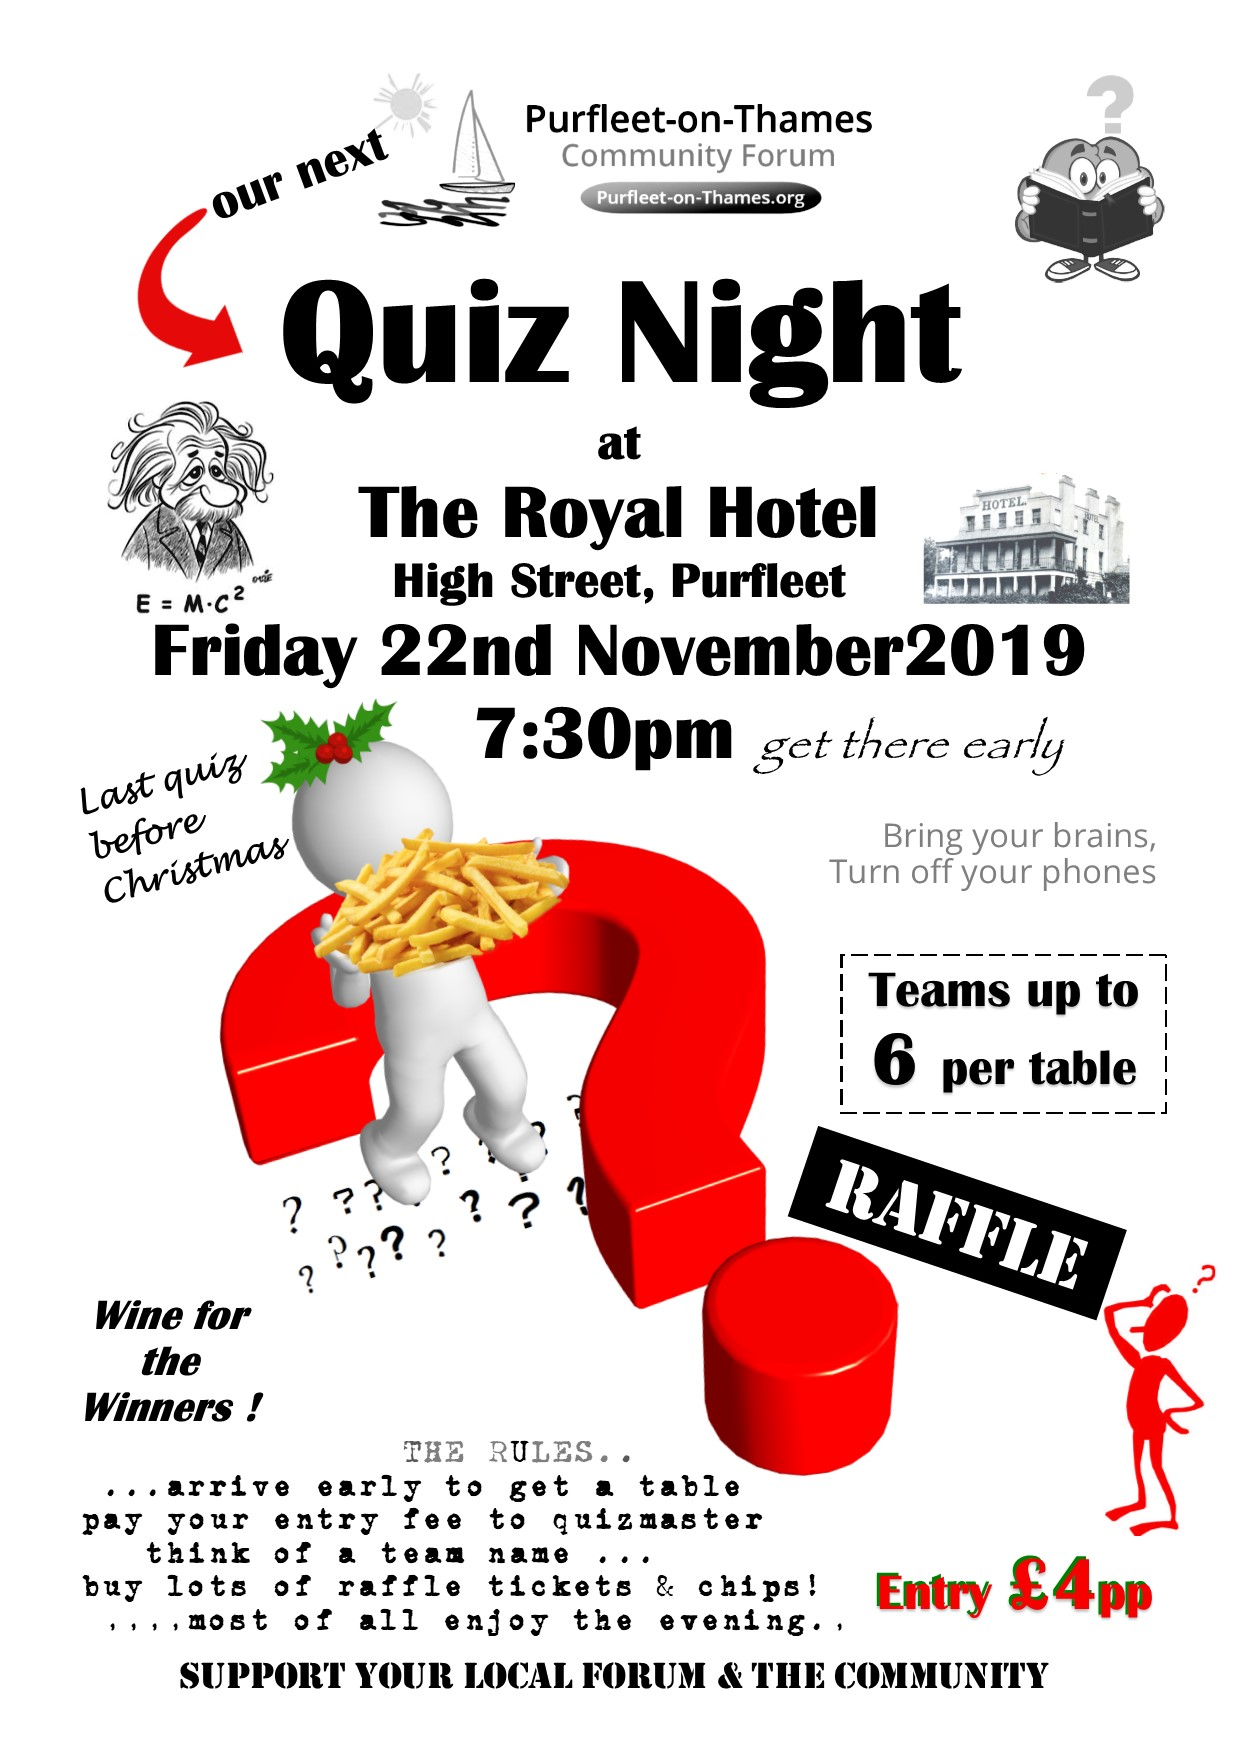 19.11.22 Quiz Night at The Royal